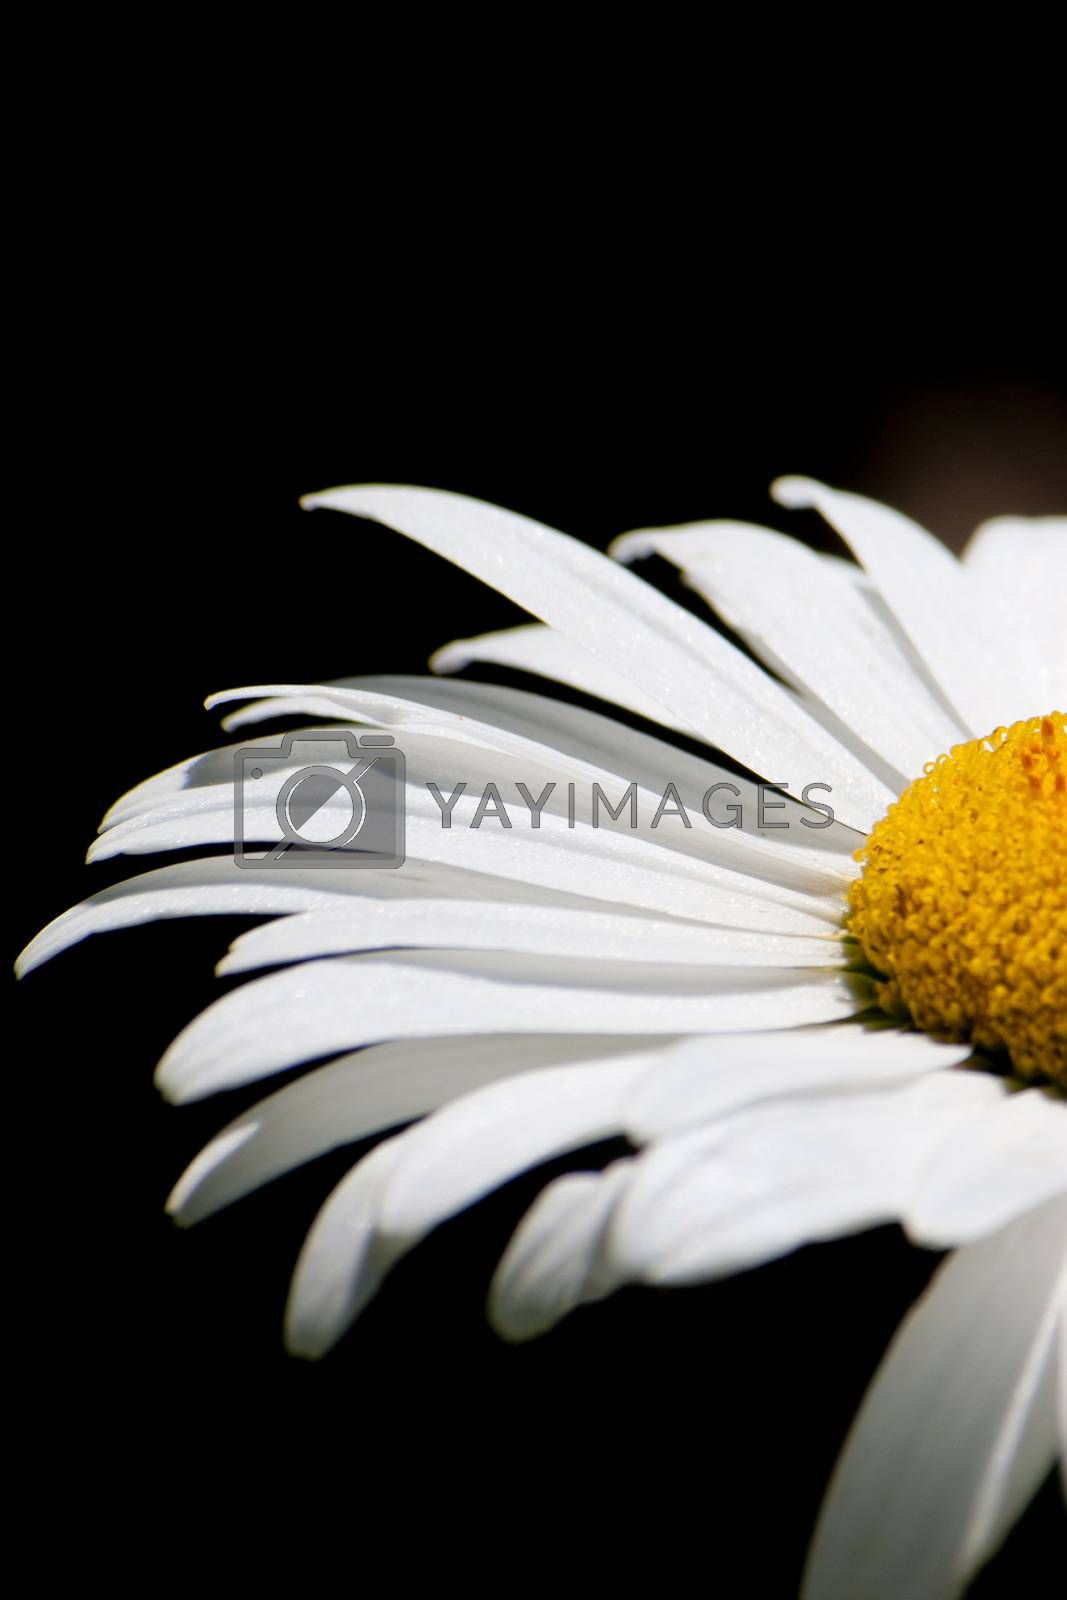 Beautiful flower macro with a close distance, background